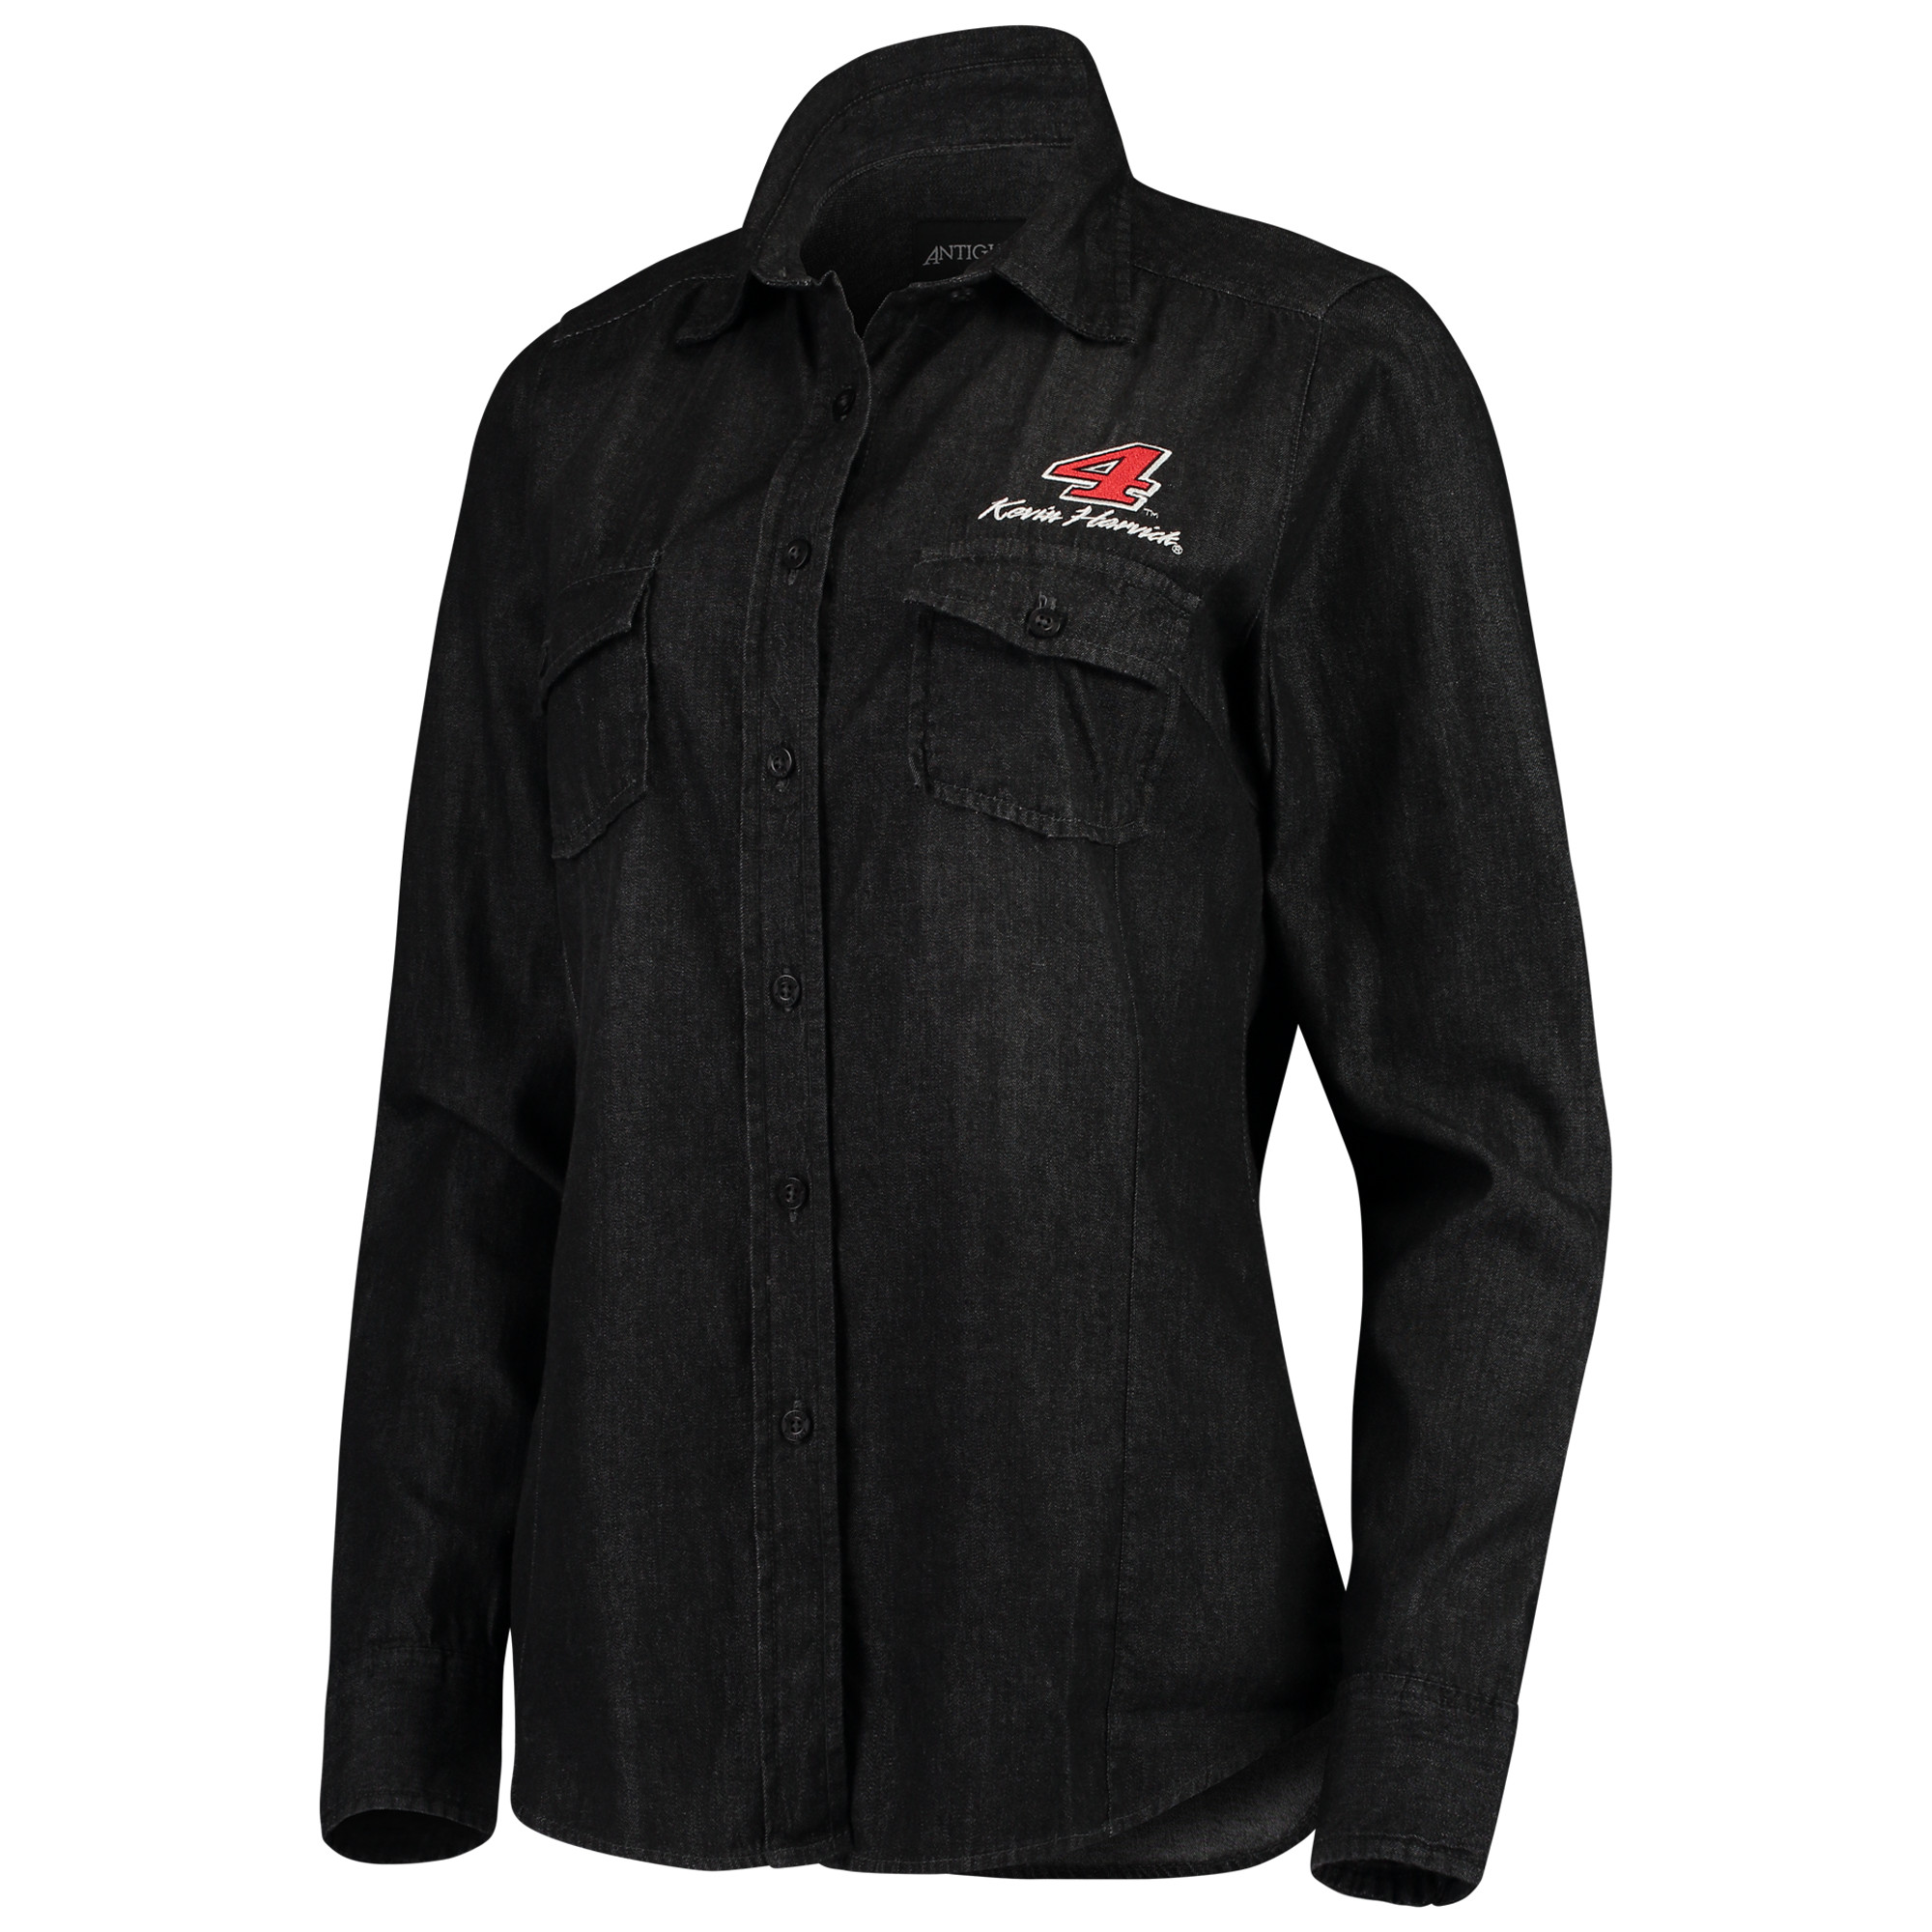 Kevin Harvick Antigua Women's Outlook Long Sleeve Button-Up Chambray Shirt - Black